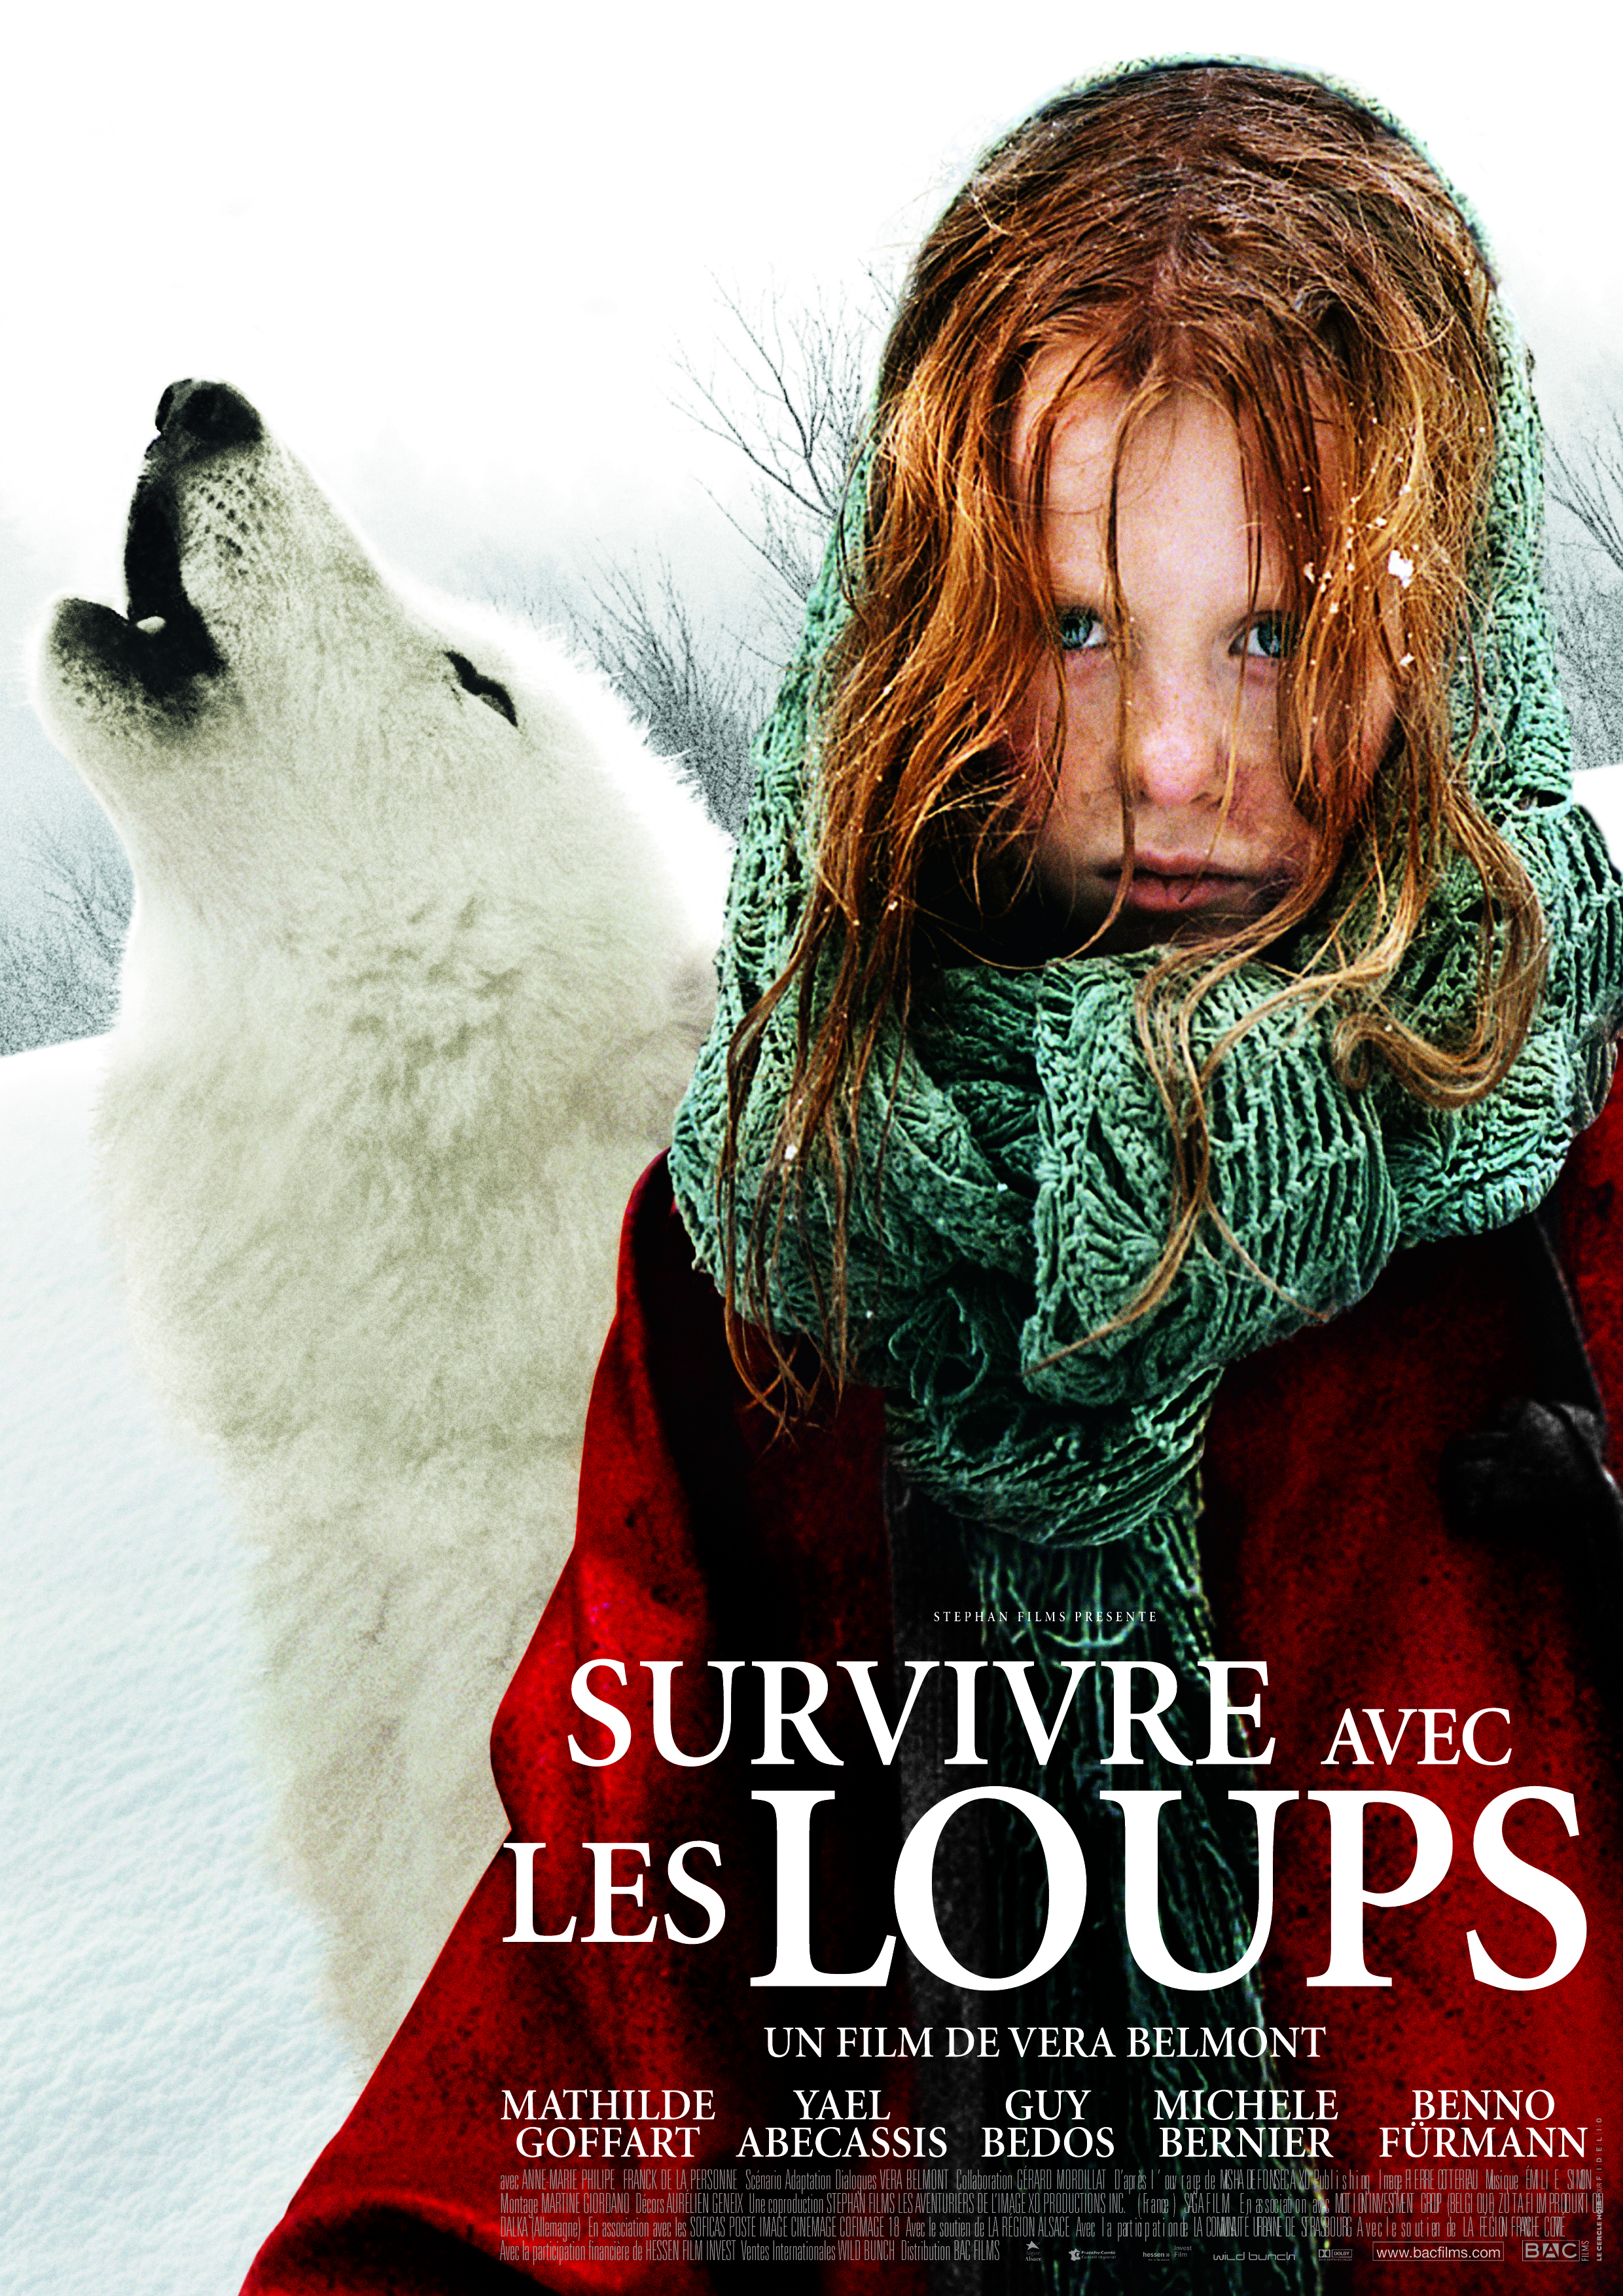 Surviver with wolves